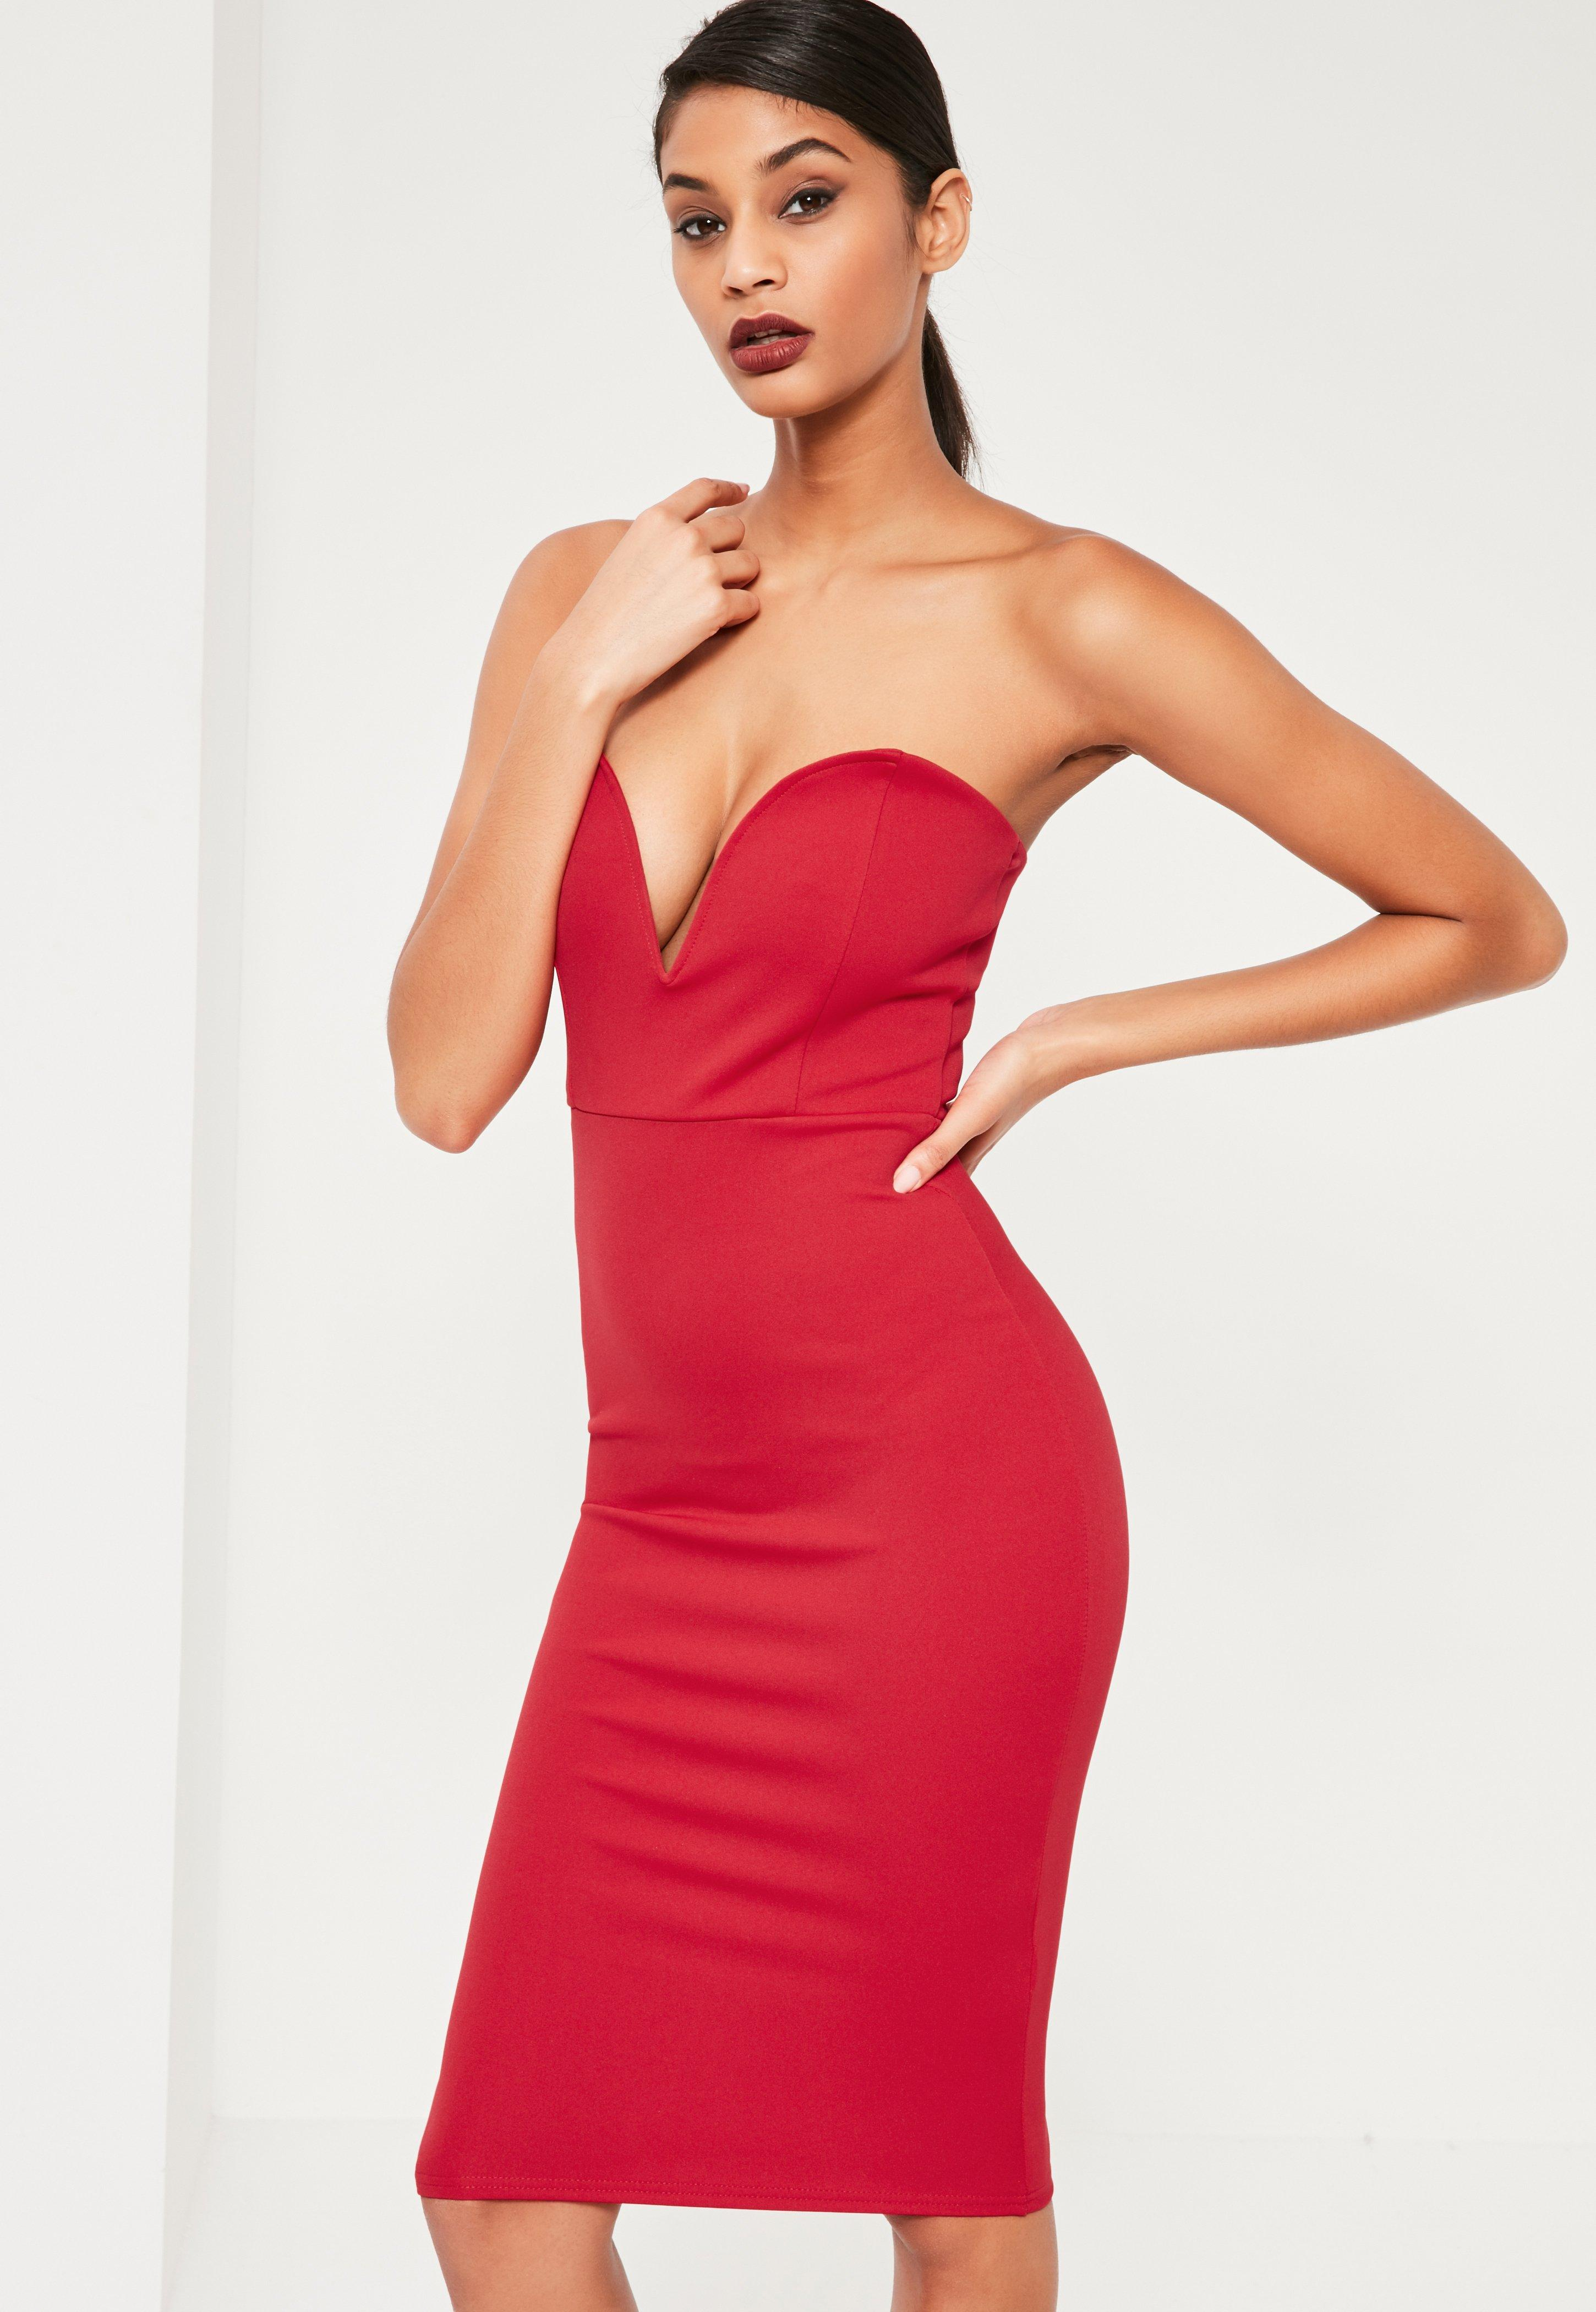 Red Cocktail Dresses   Shop Red Cocktail Dresses Online - Missguided